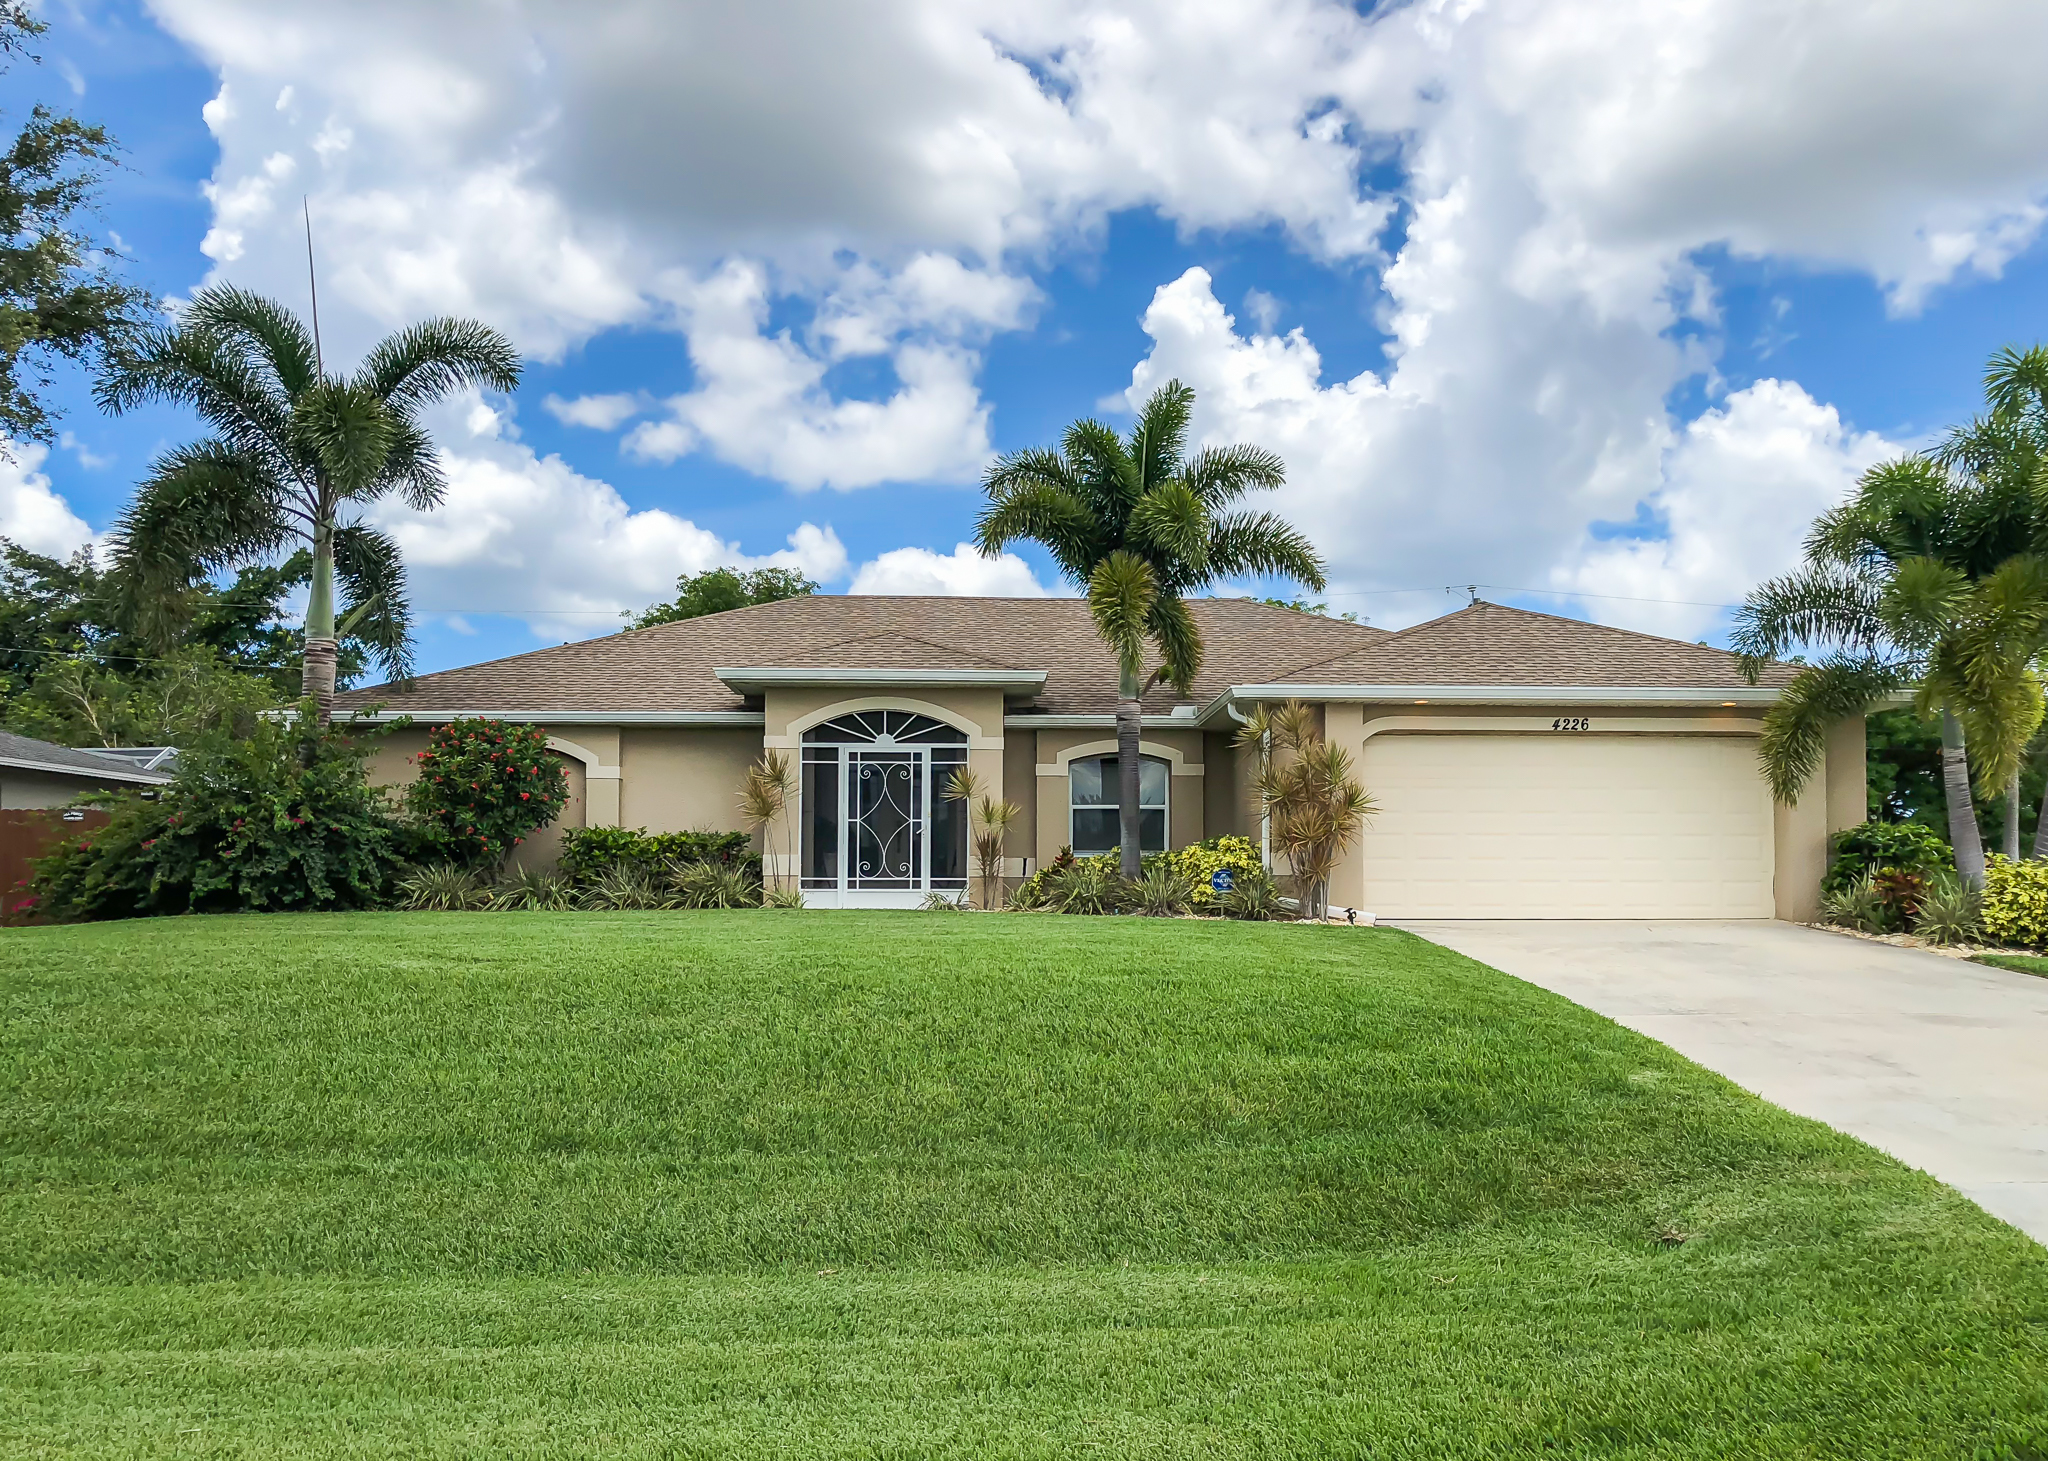 Cape Coral Florida Pool Home Shows Like A Model Home